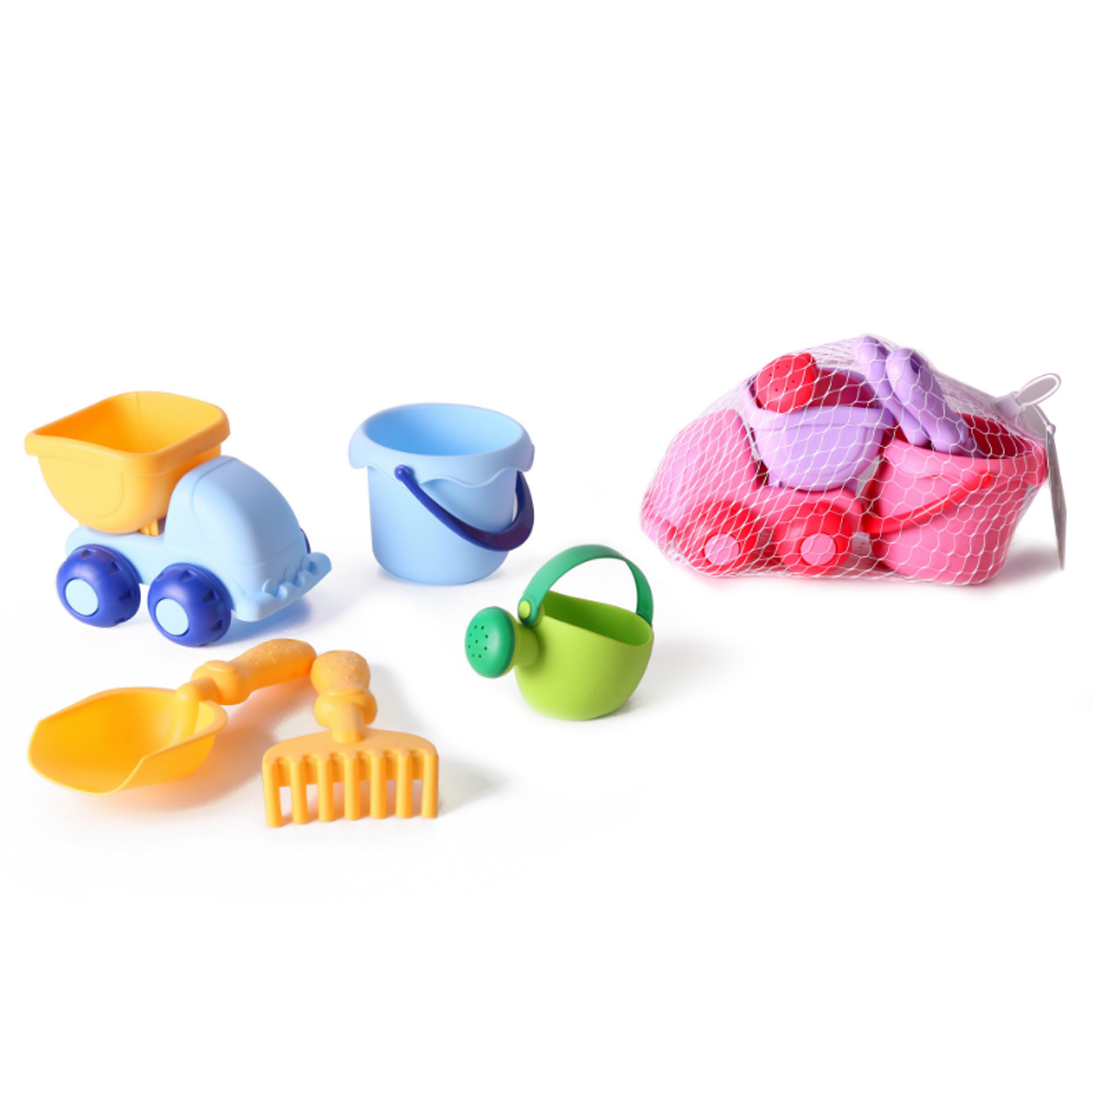 Soft Rubber Beach Sand Toys Beach Toys Set Outdoors Fun For Kids - Colorful